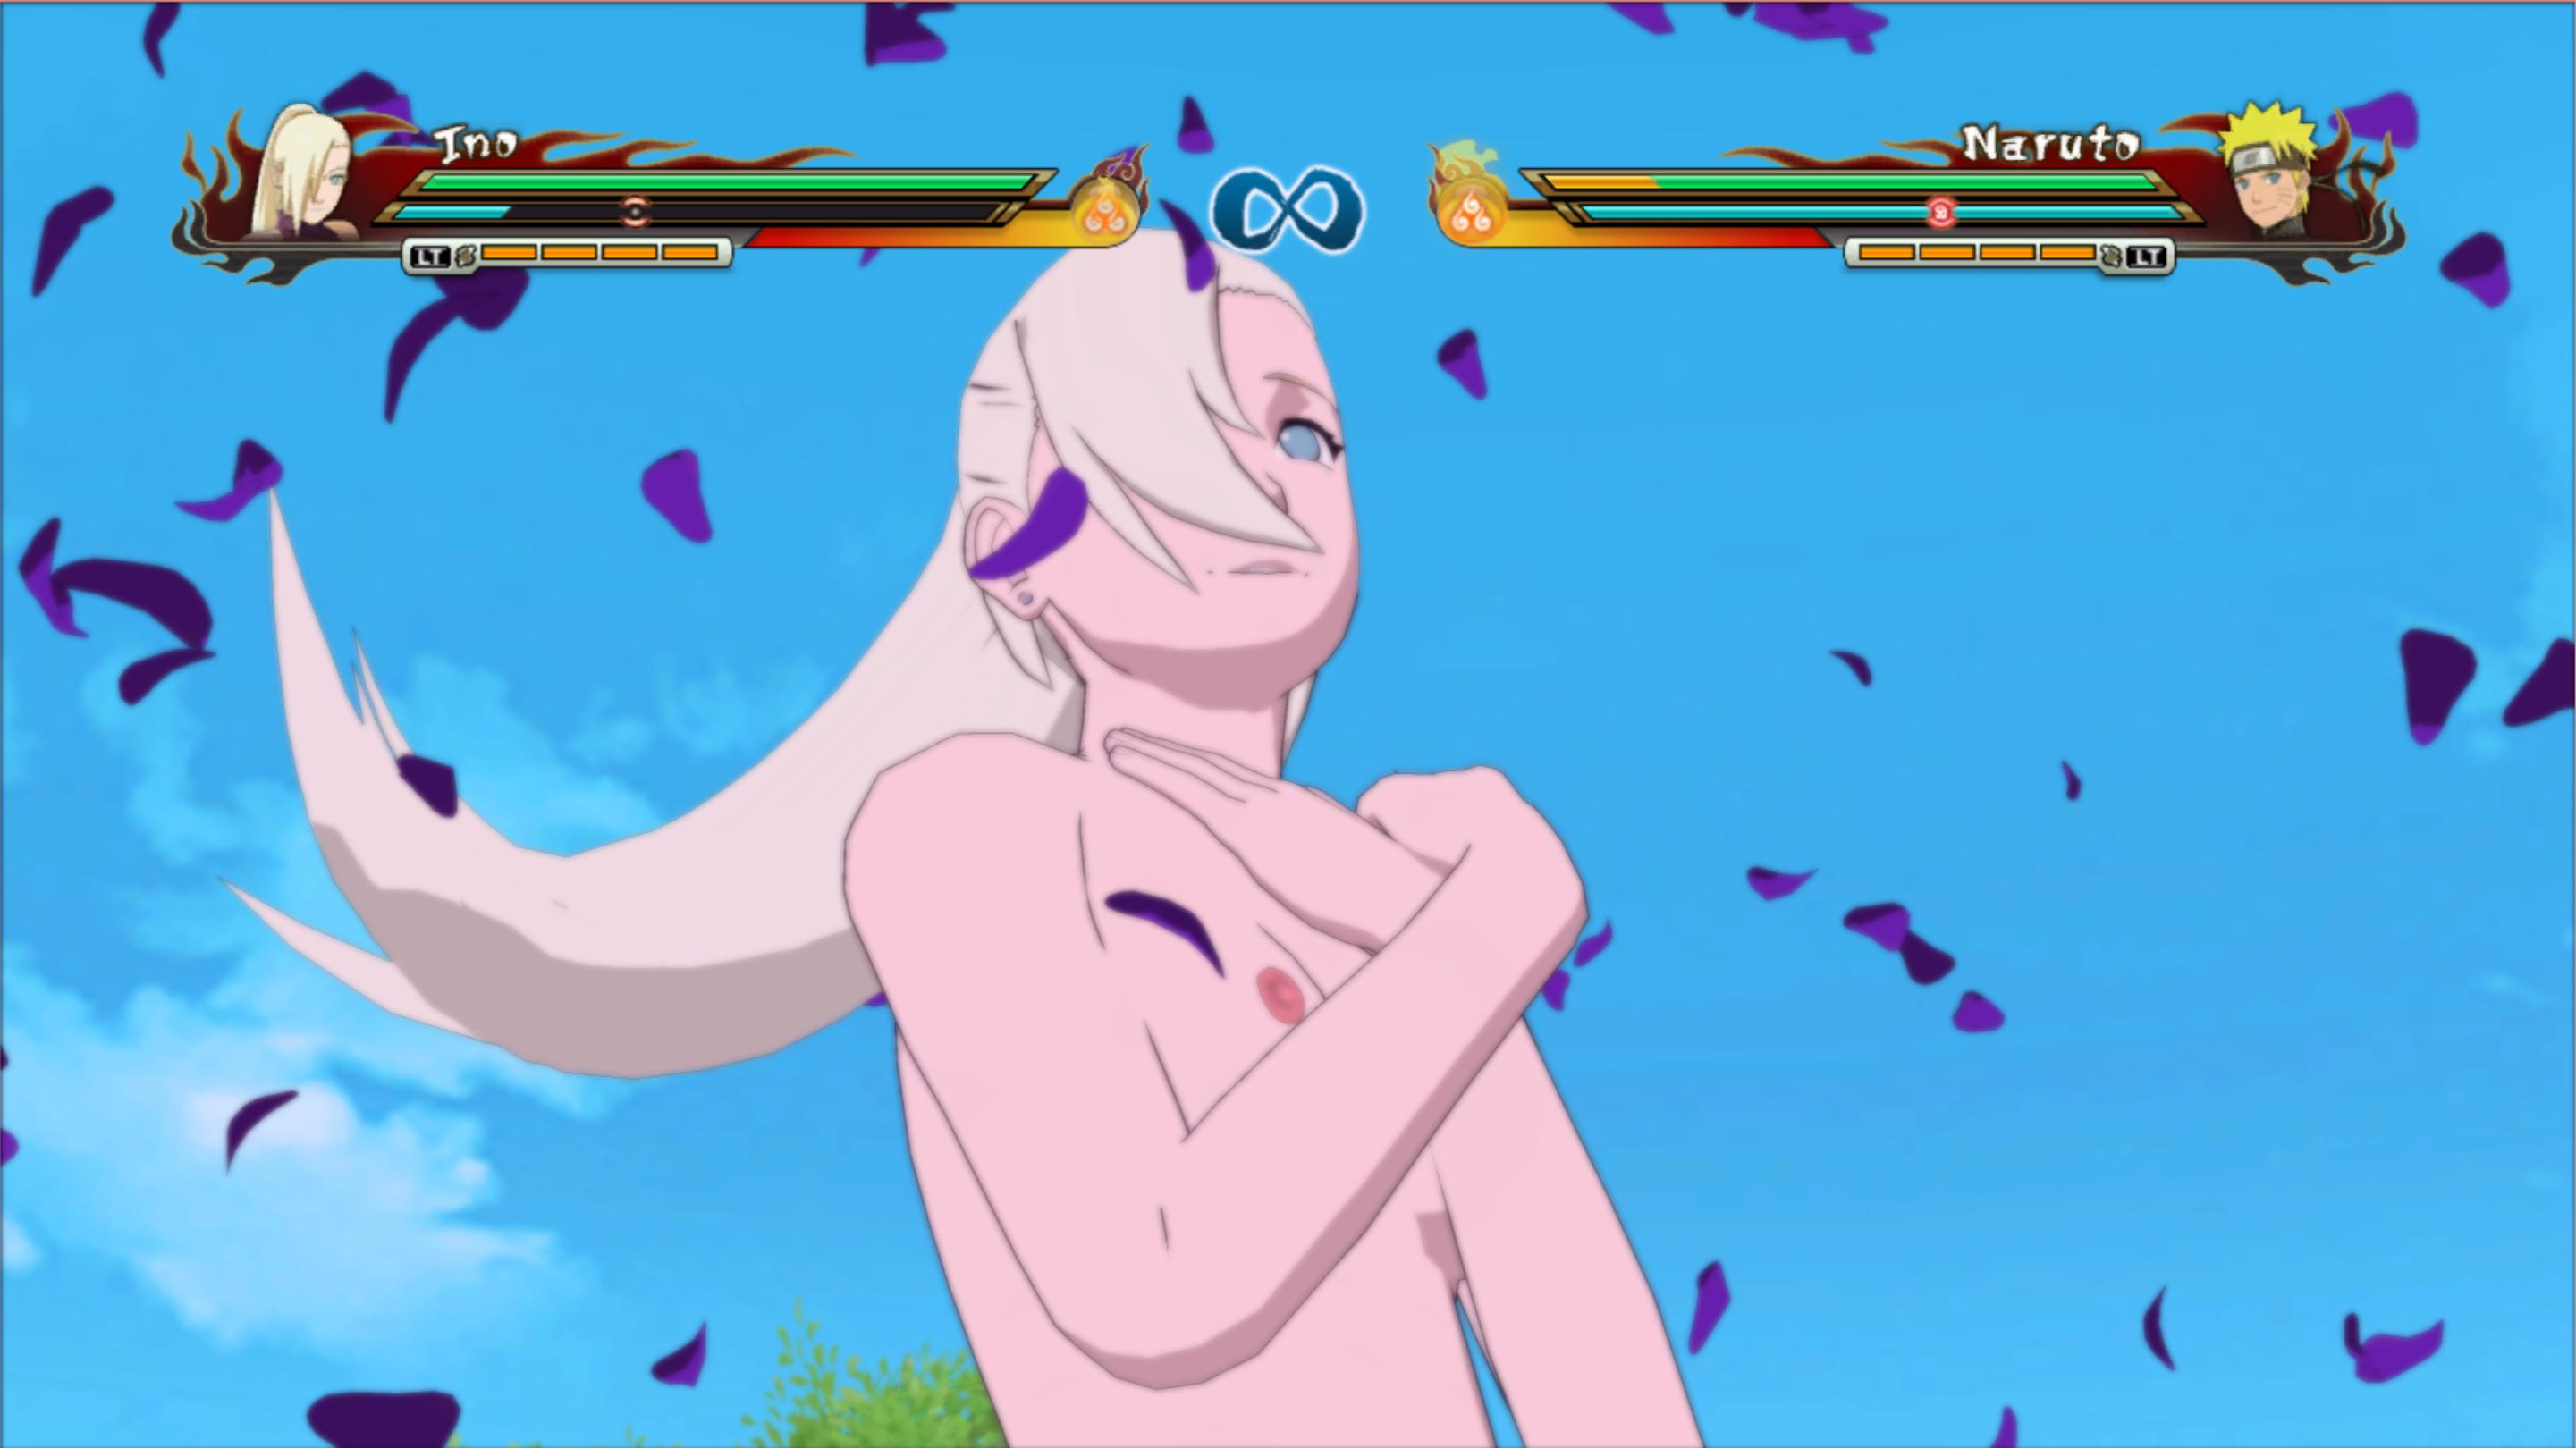 Naruto nude mod cartoon gallery